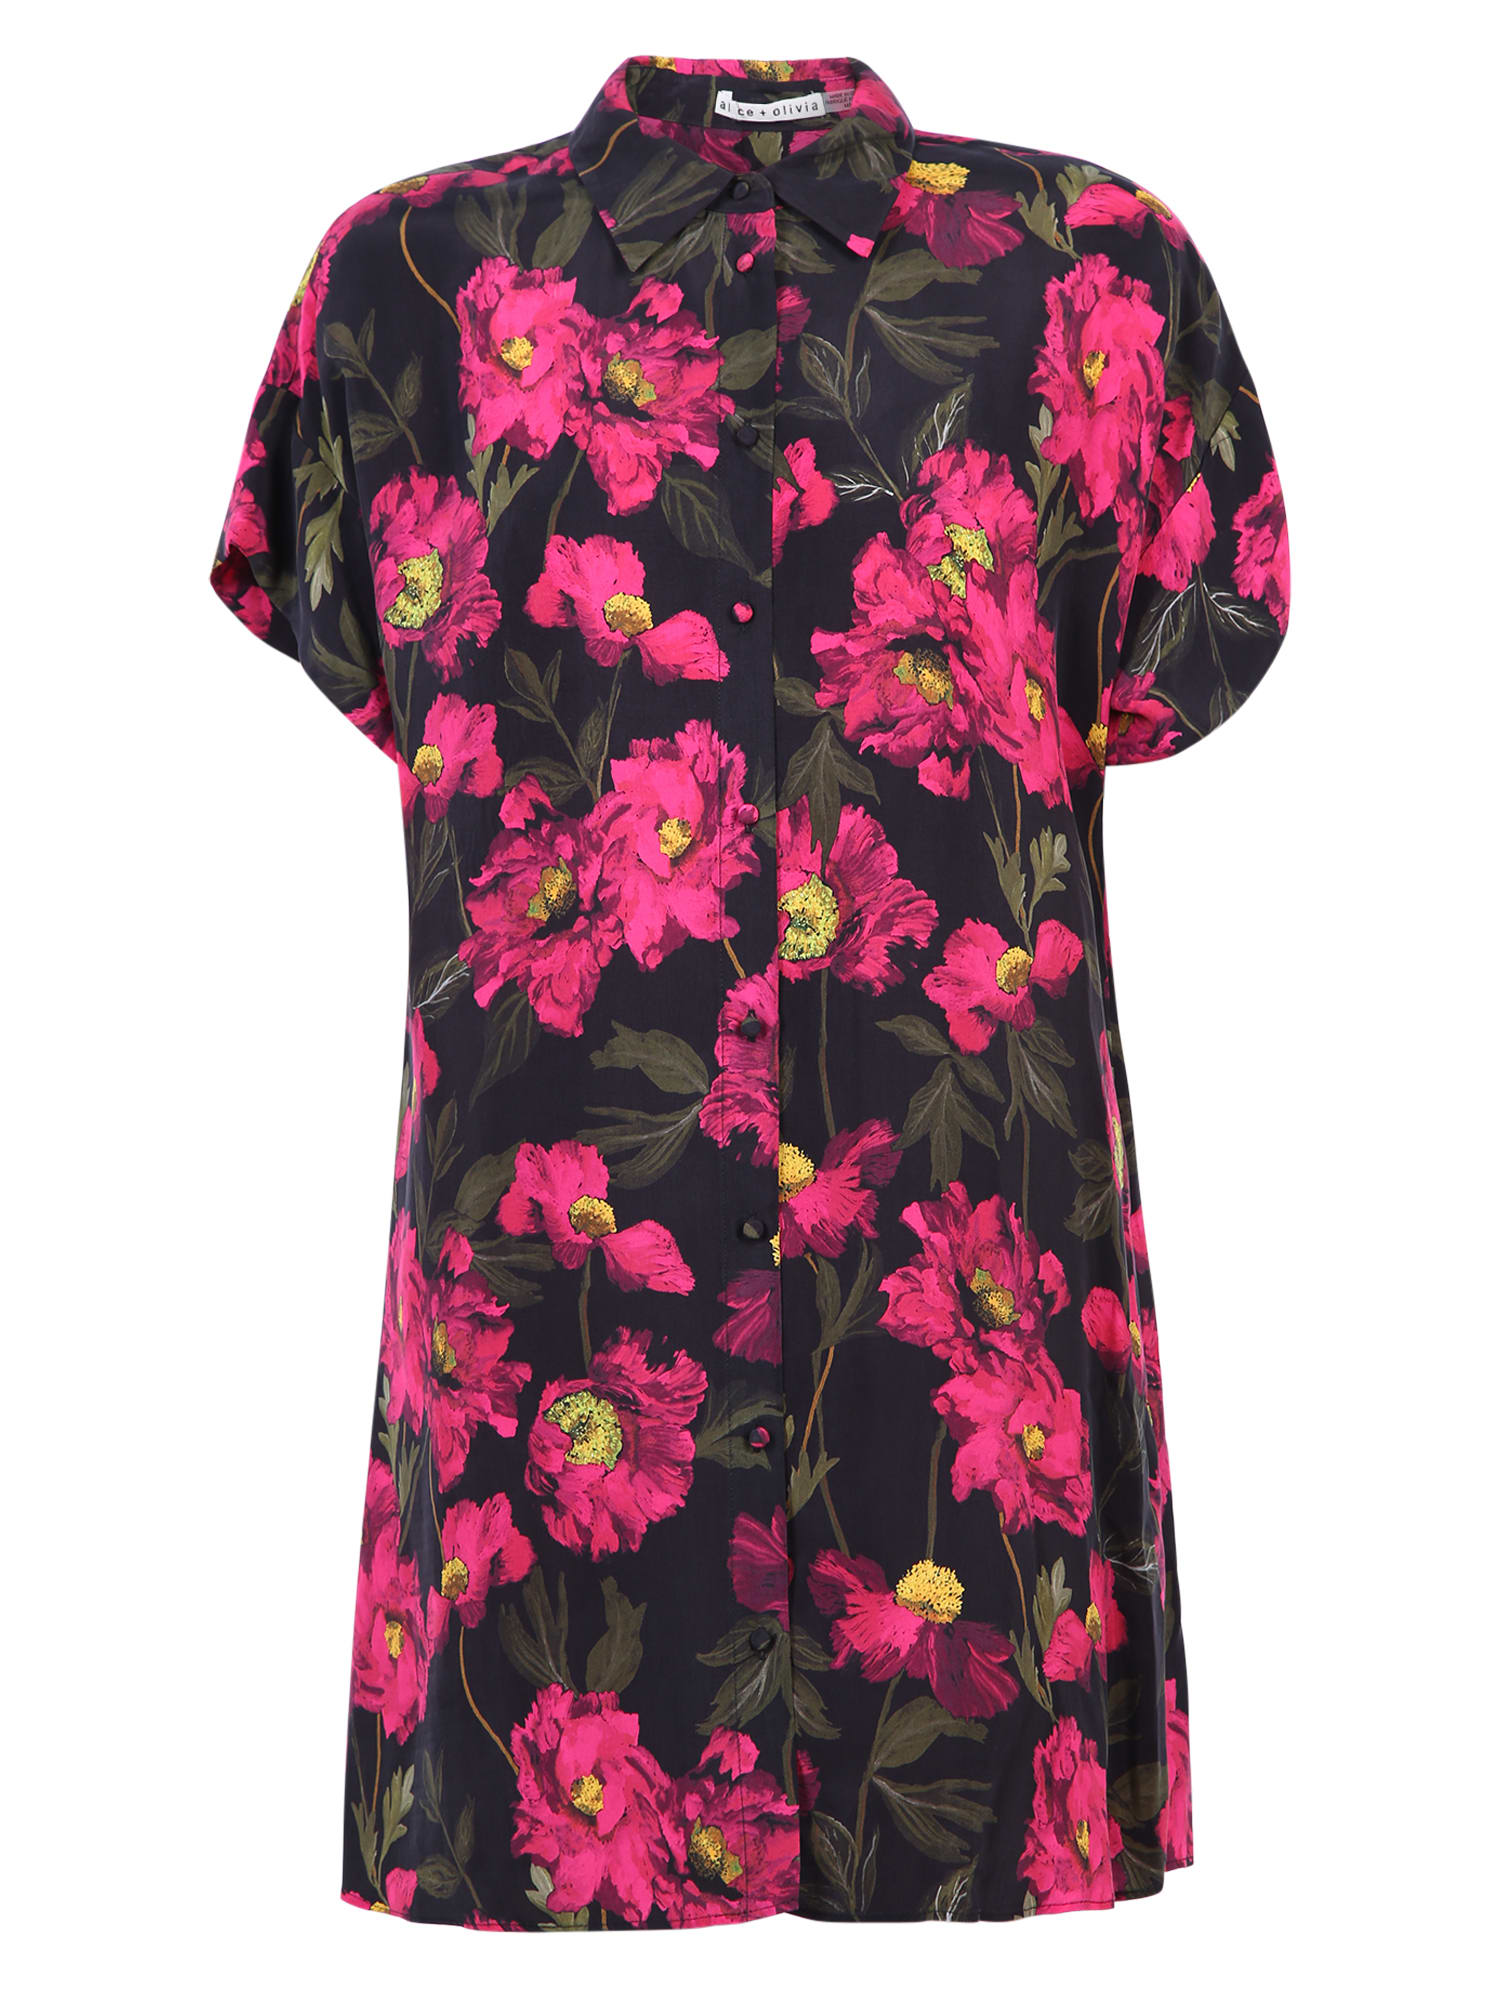 Alice + Olivia Printed Shirt Dress